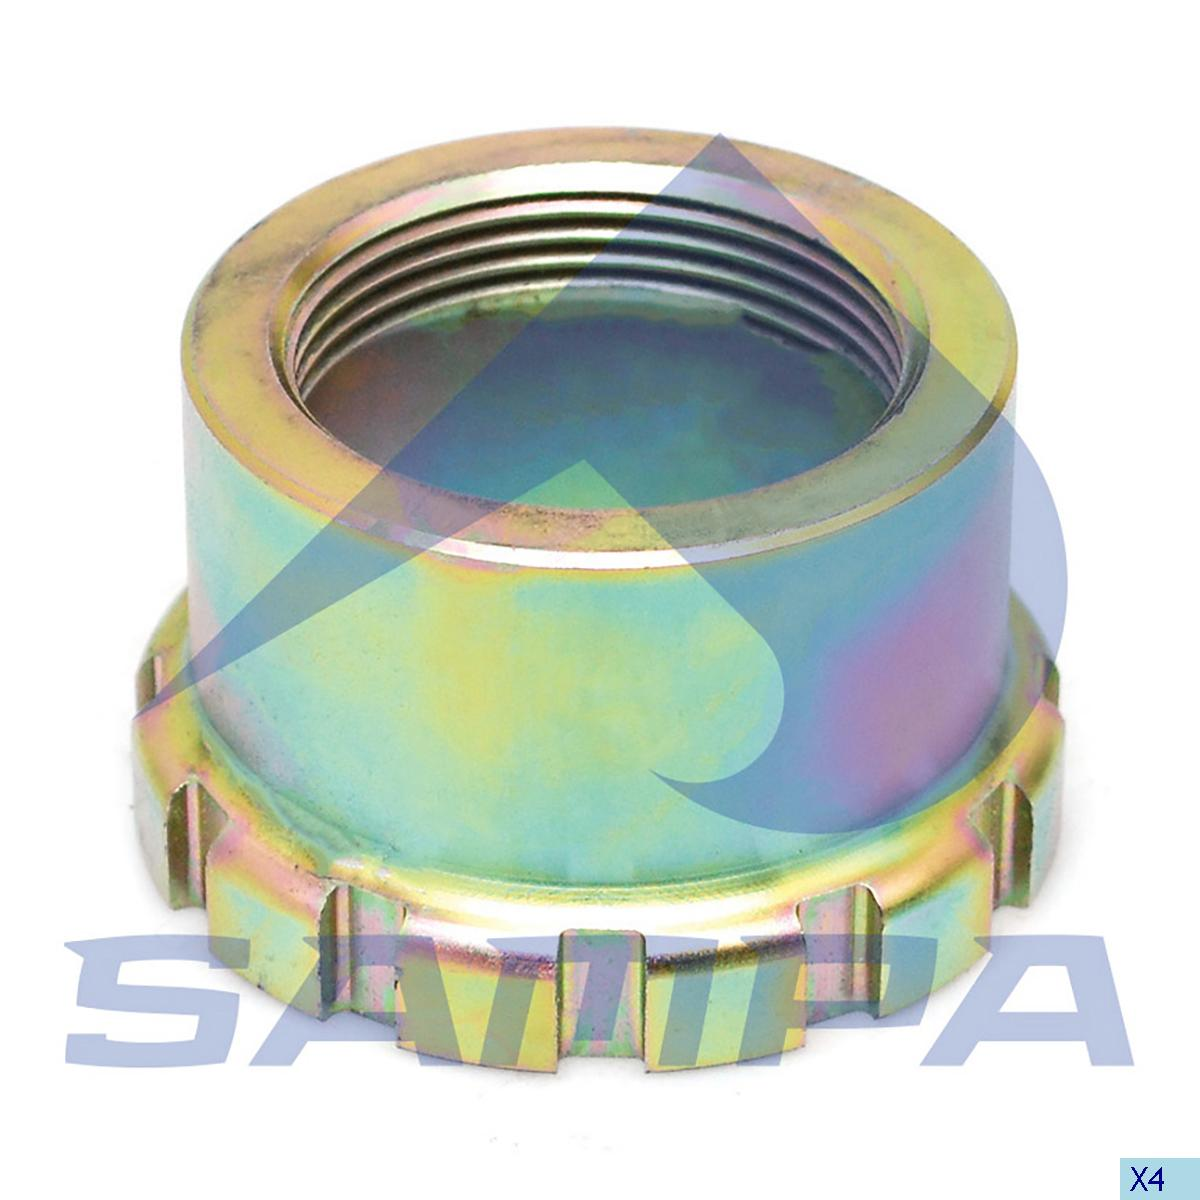 Collet Nut, Brake Chamber, Ror-Meritor, Brake